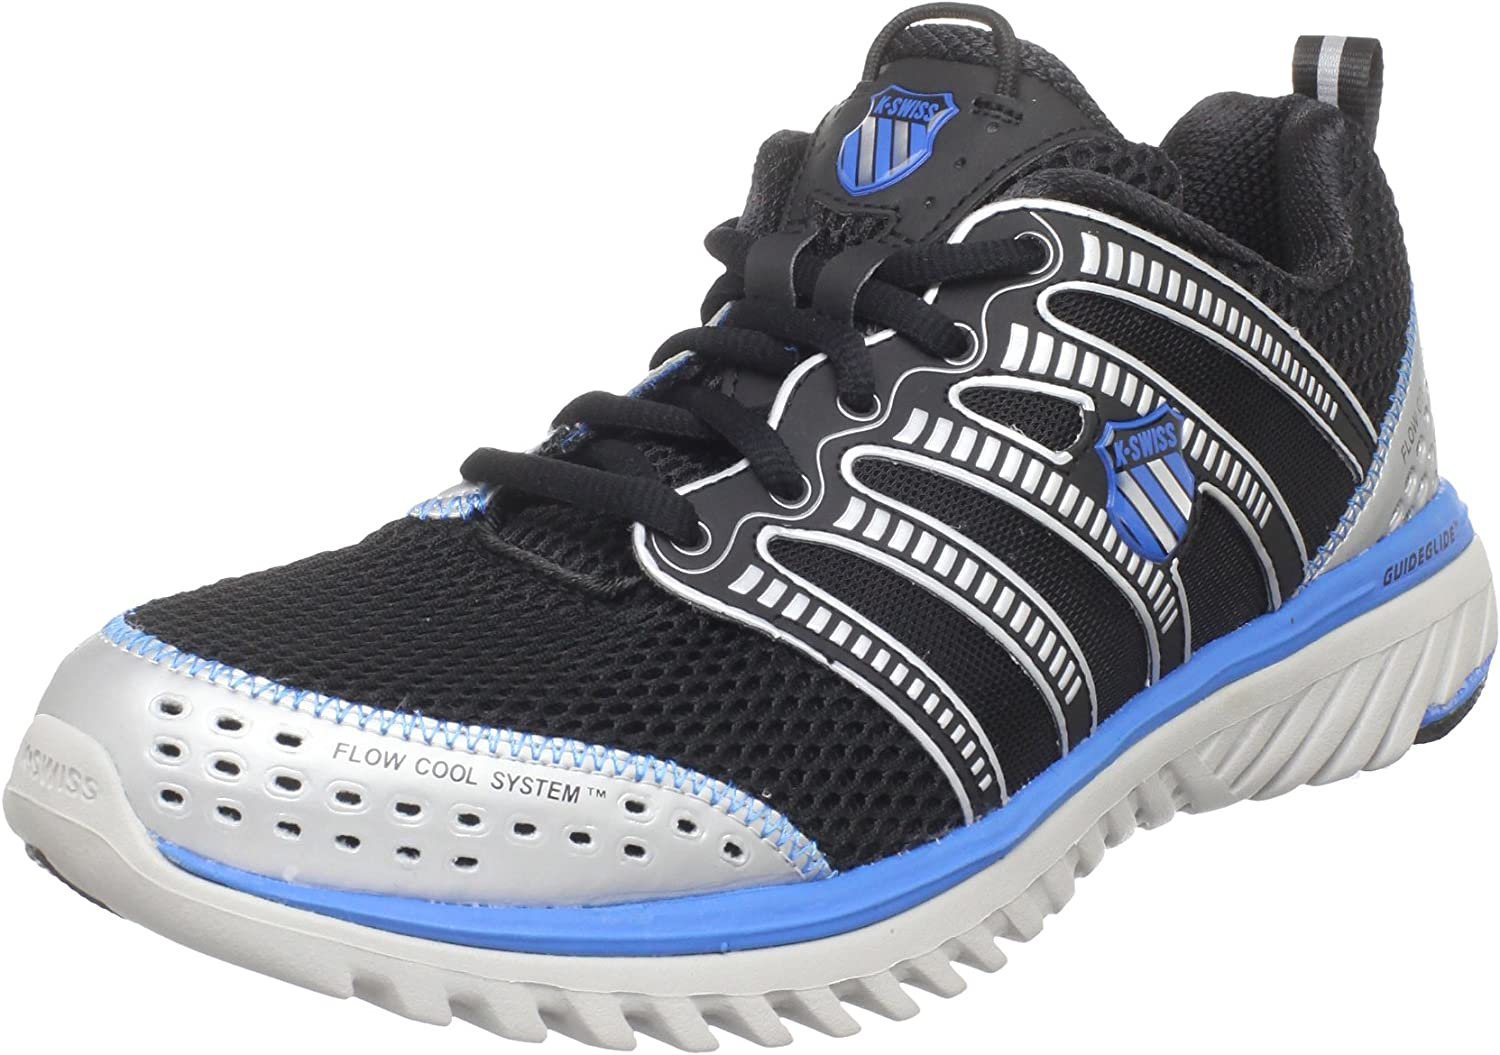 K-SWISS Blade Light Run Zapatilla de Running Caballero, Negro/Plata/Azul, 42: Amazon.es: Zapatos y complementos